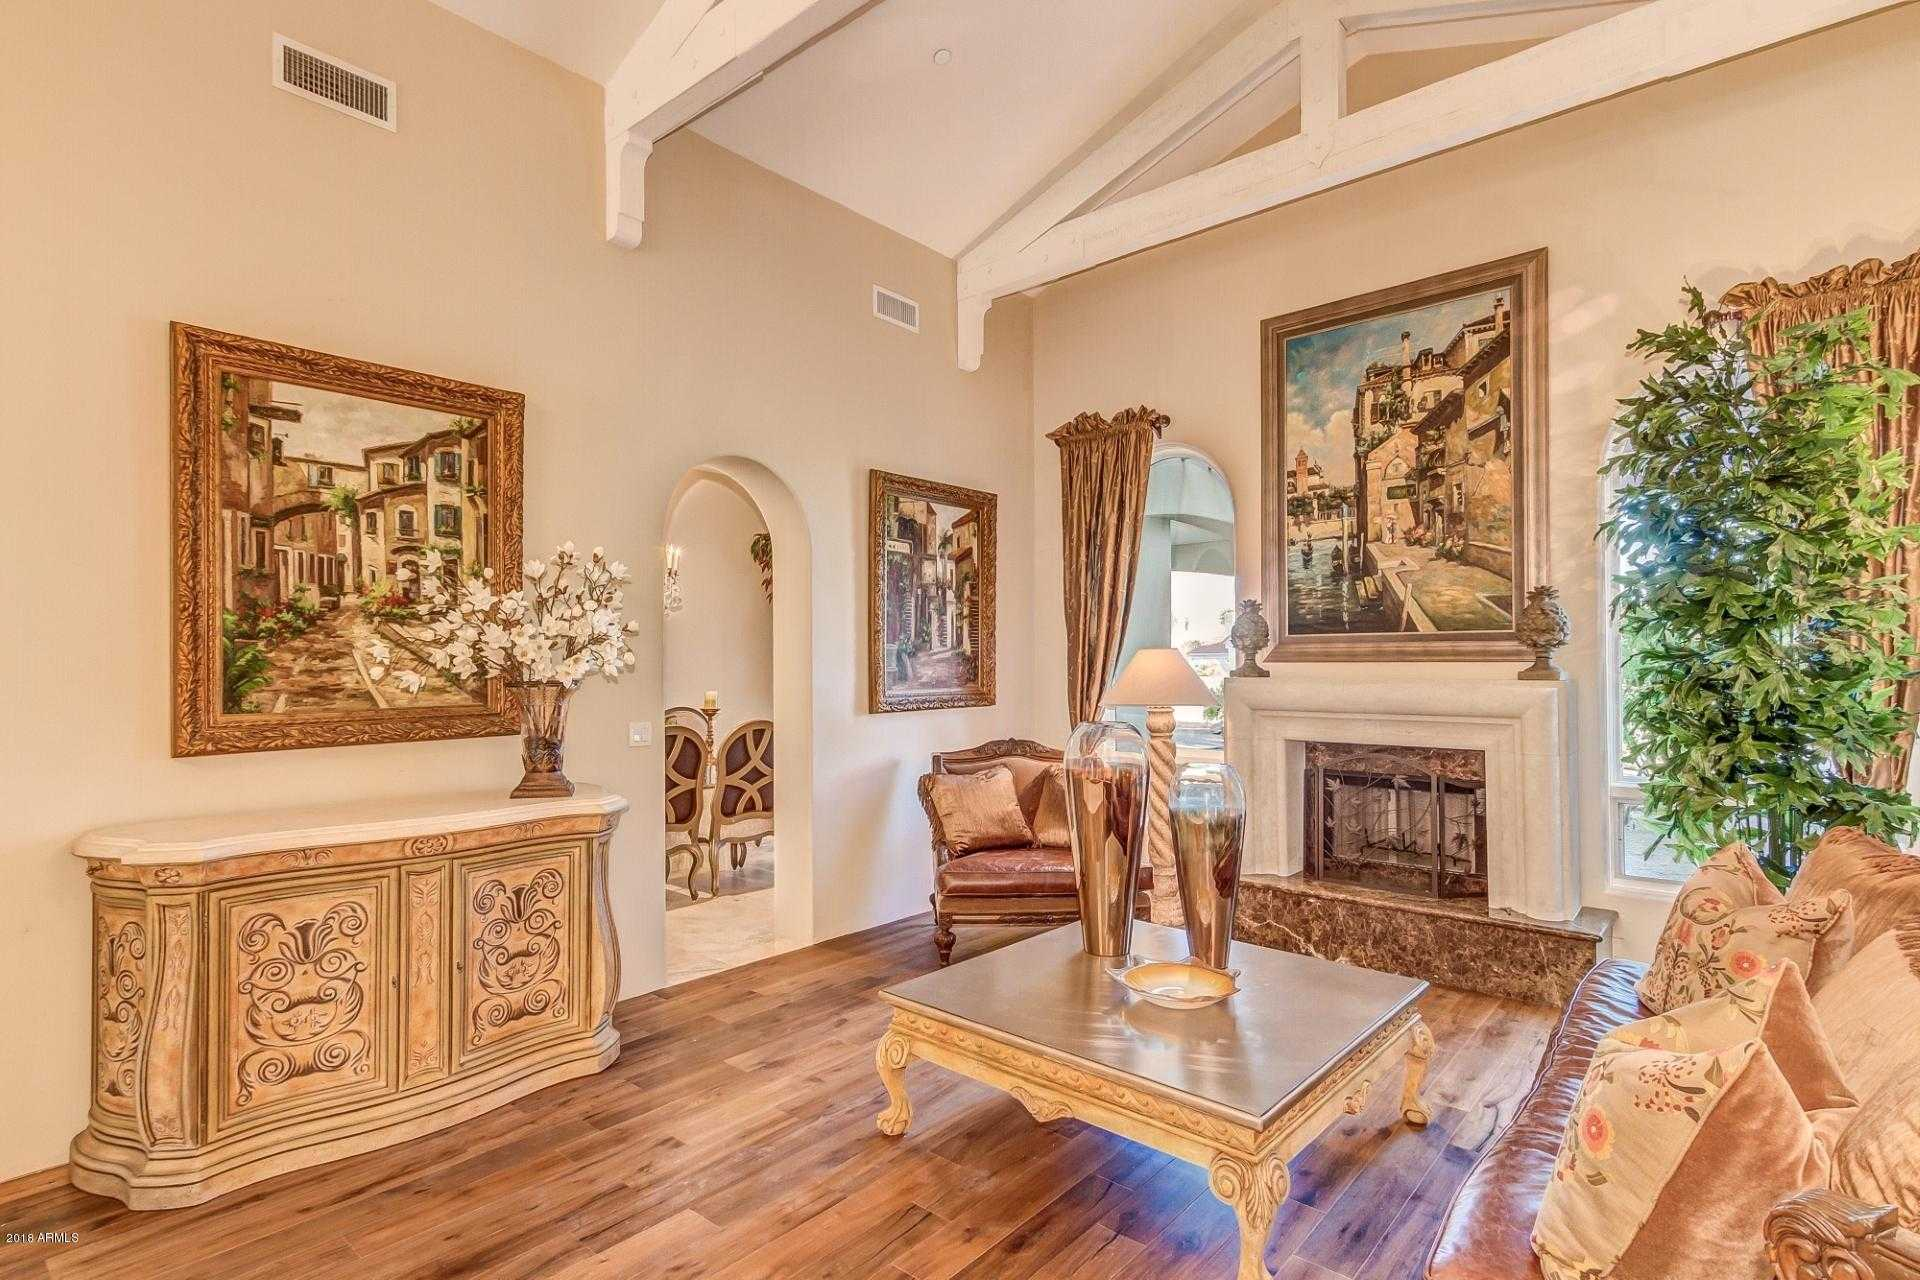 $1,395,000 - 4Br/4Ba - Home for Sale in La Colina, Paradise Valley